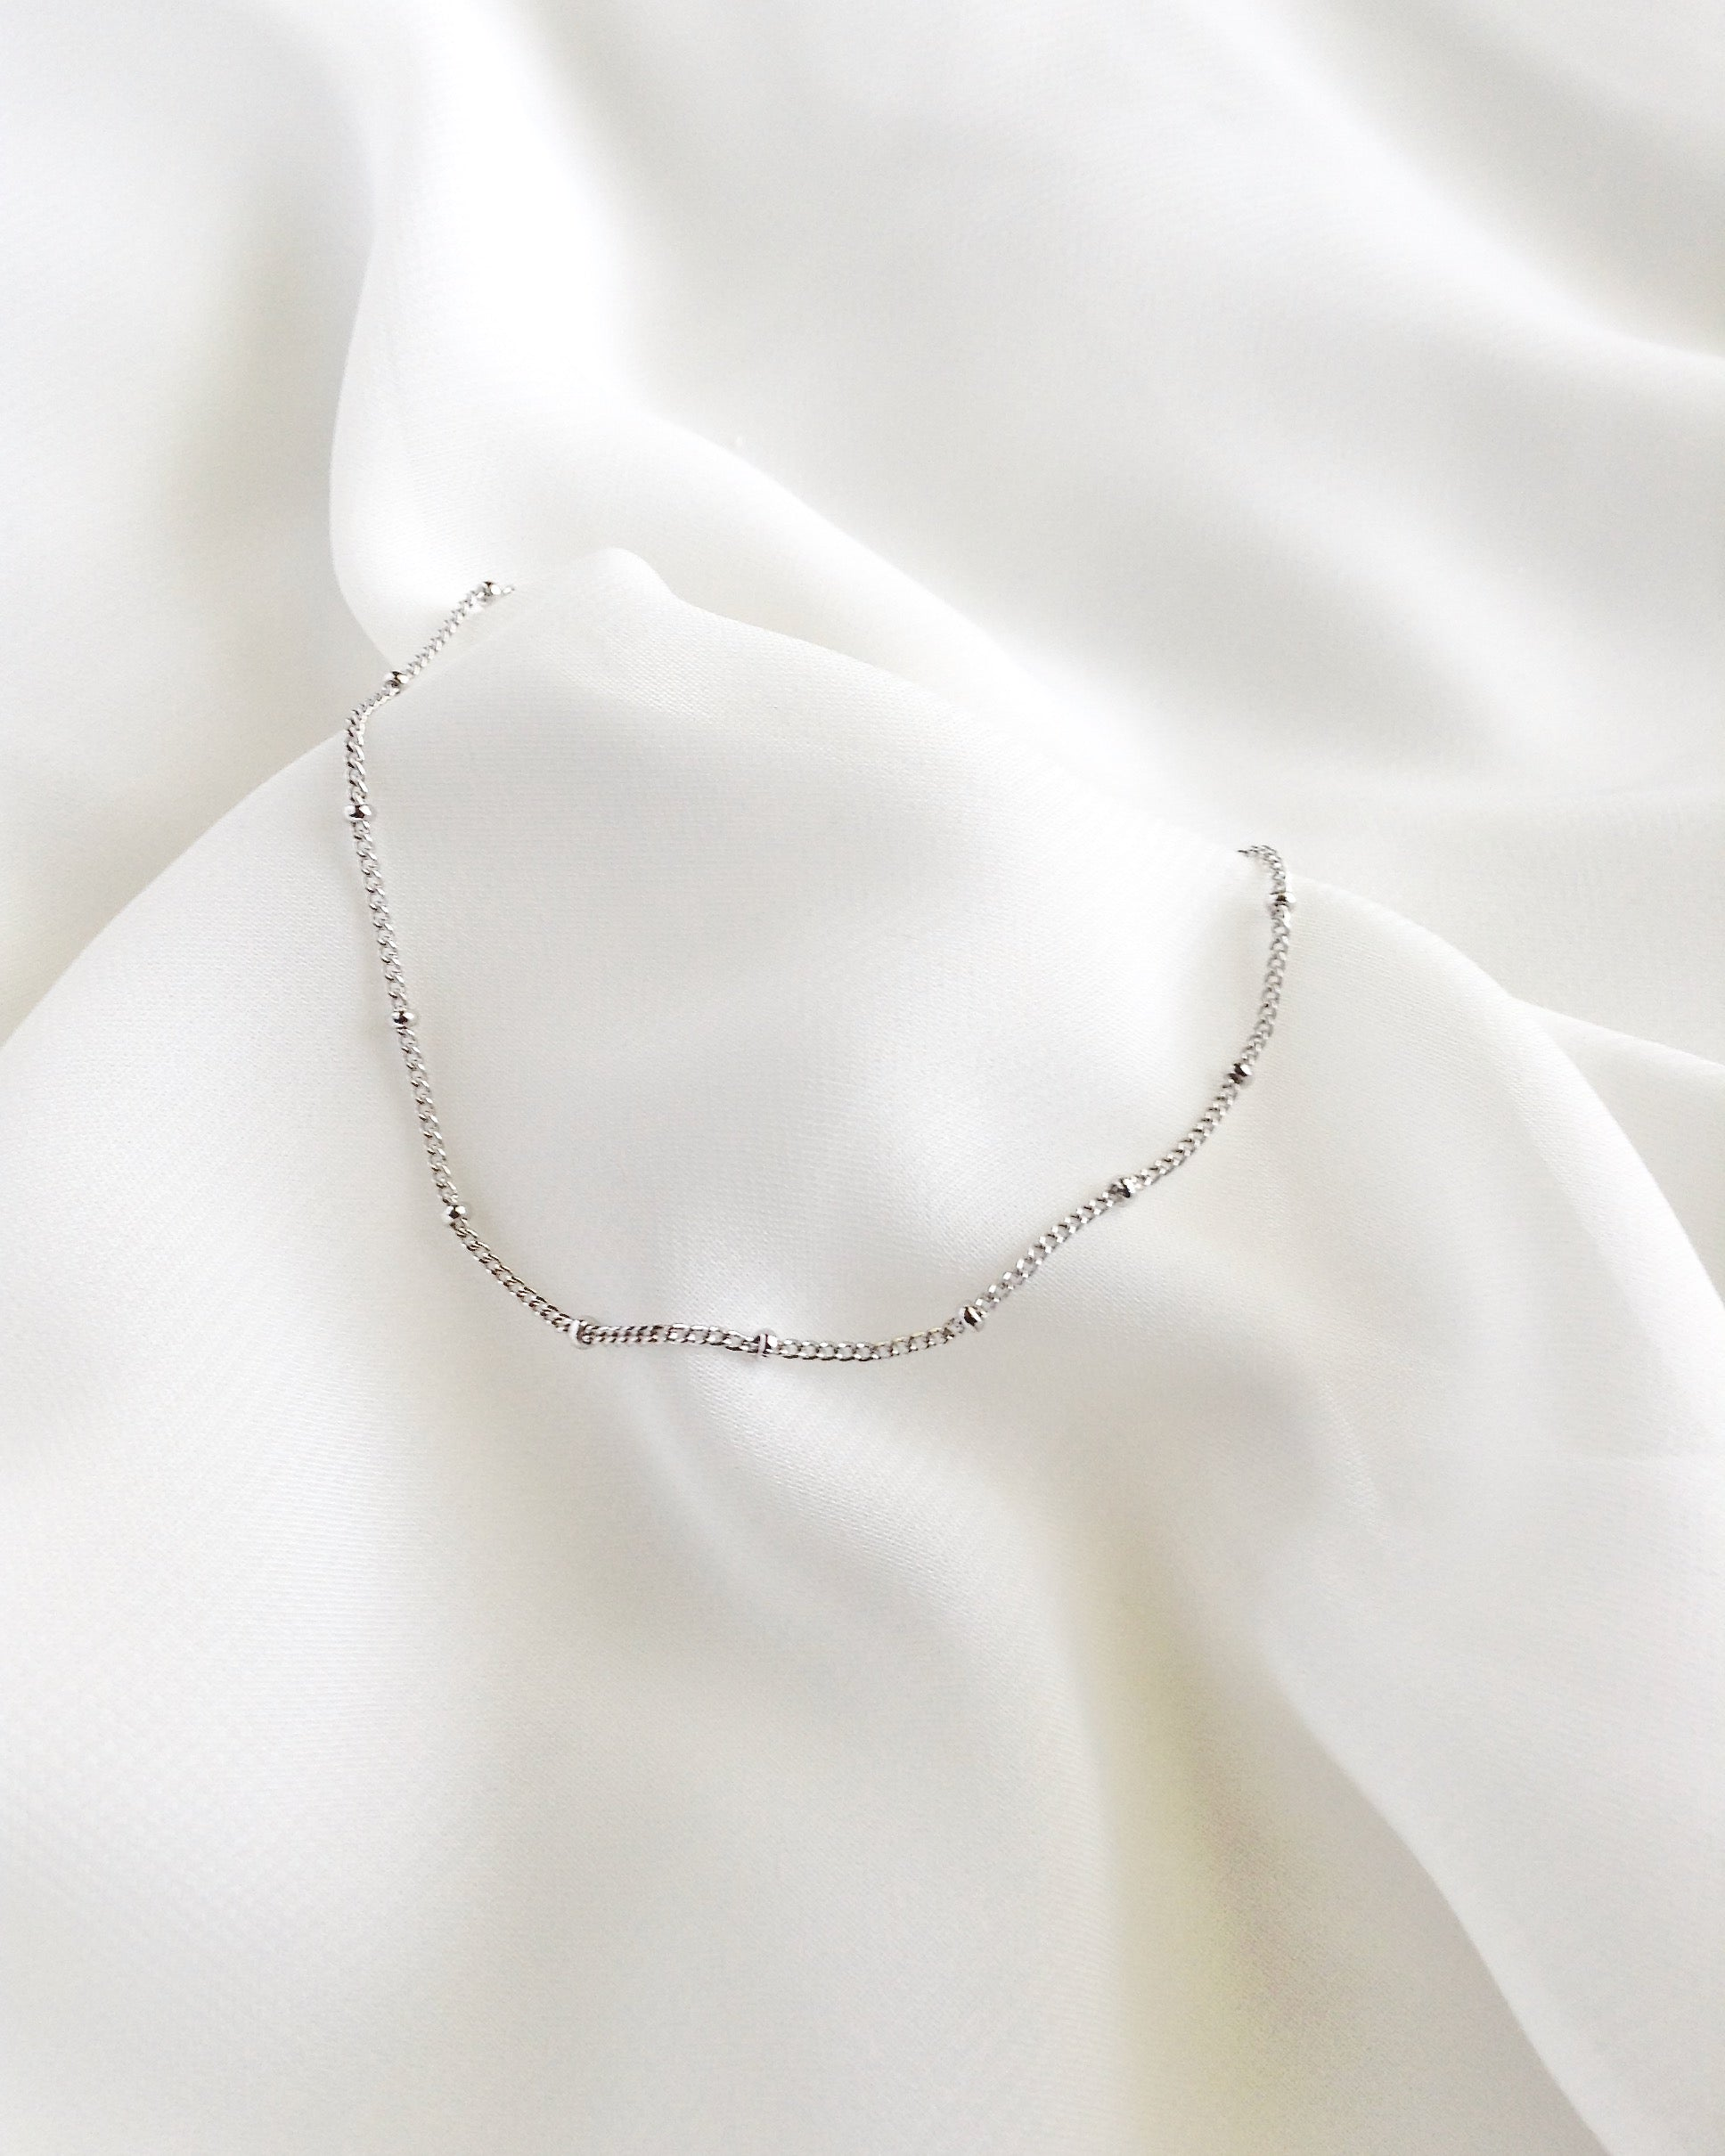 Dainty Minimalist Chain Bracelet in Sterling Silver or Gold Filled | IB Jewelry